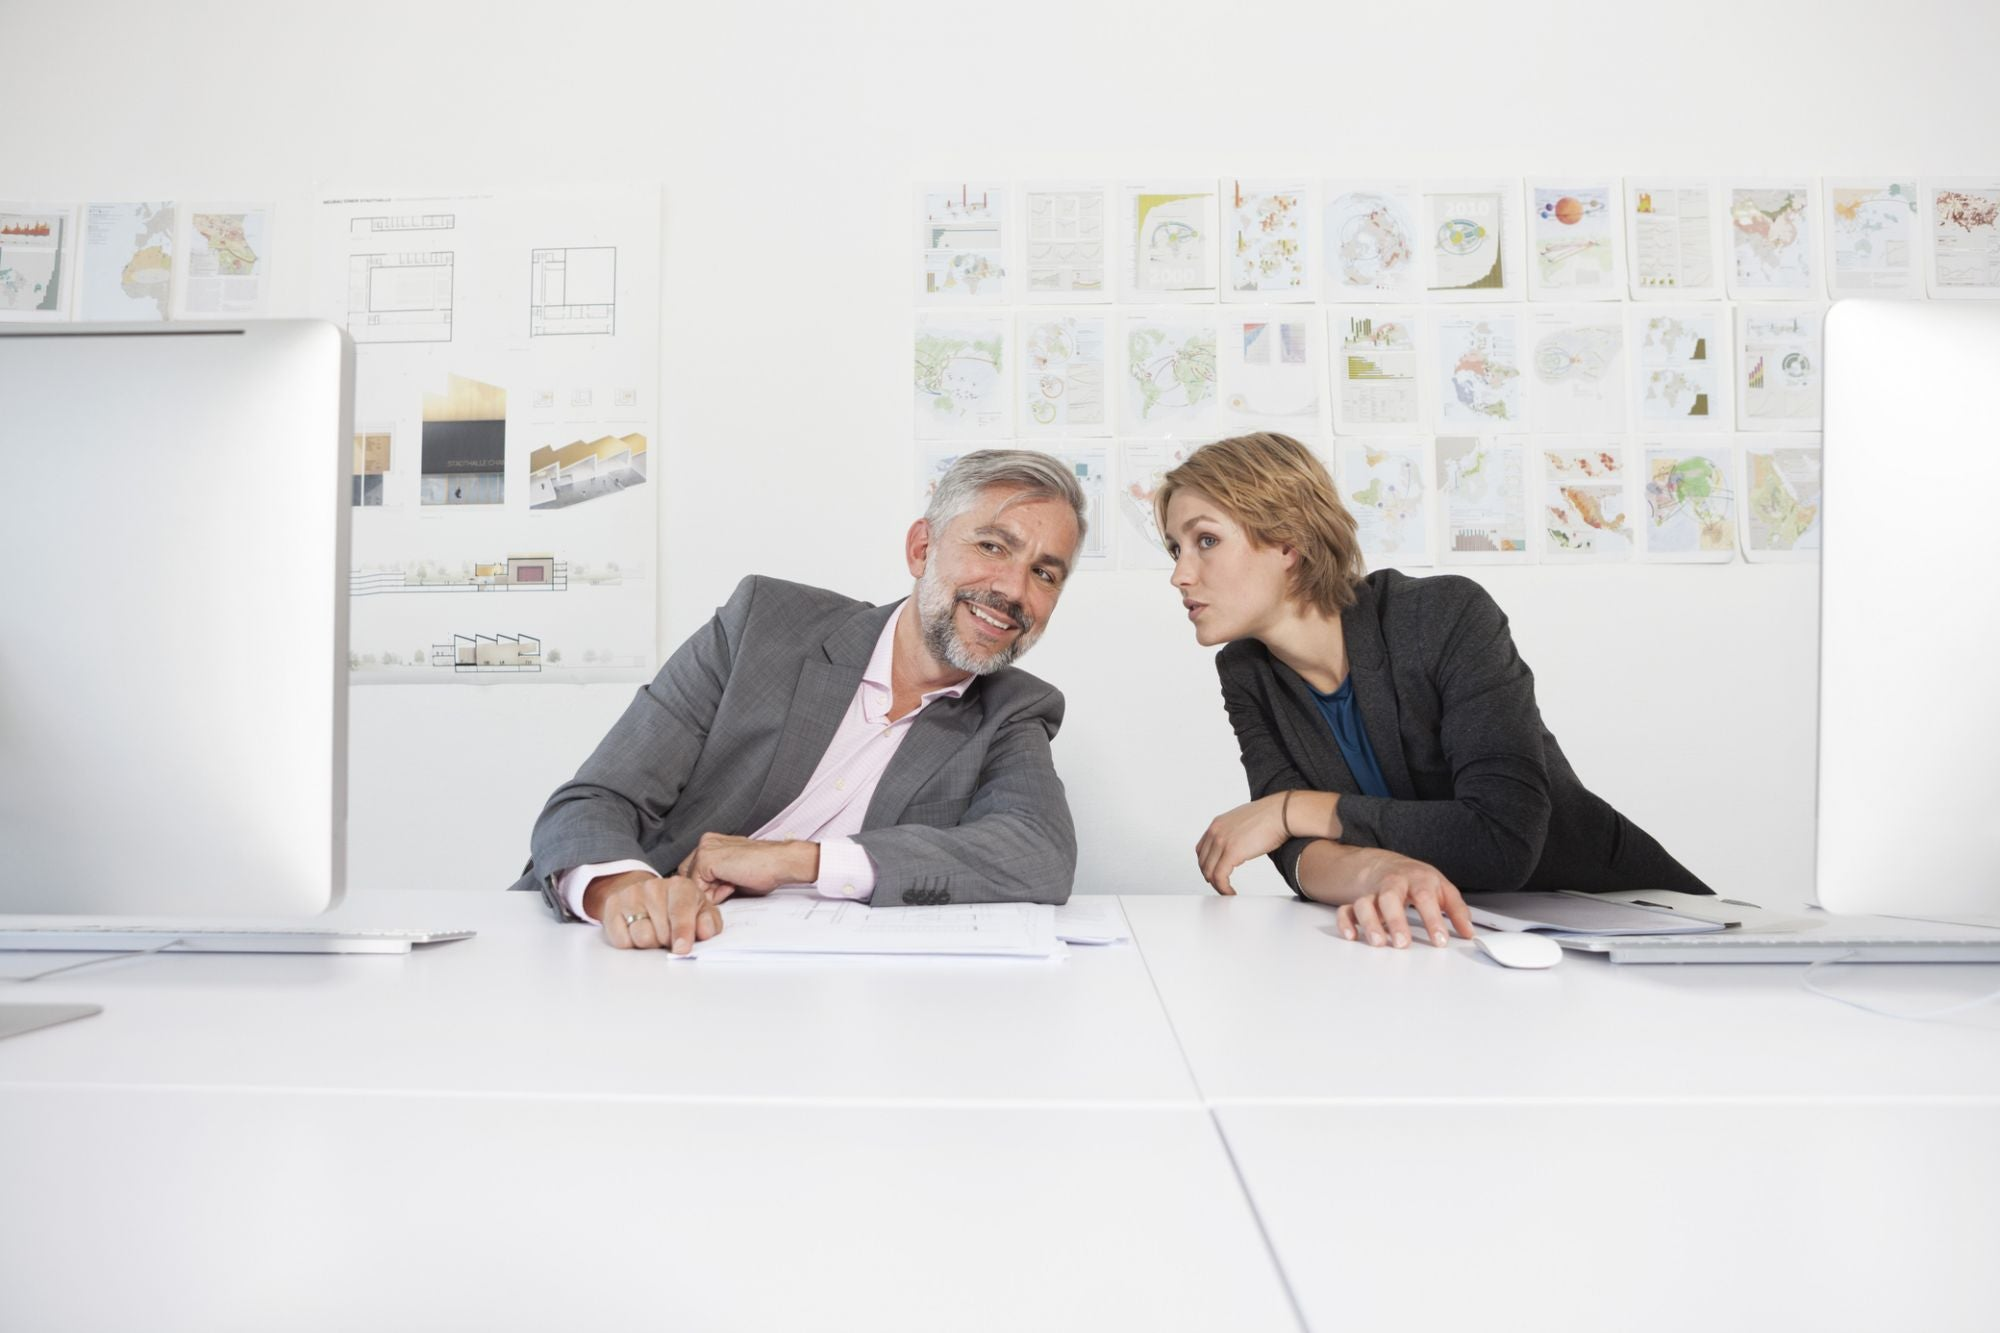 Is Your Boss Controlling You Subtly Without Your Realizing It?